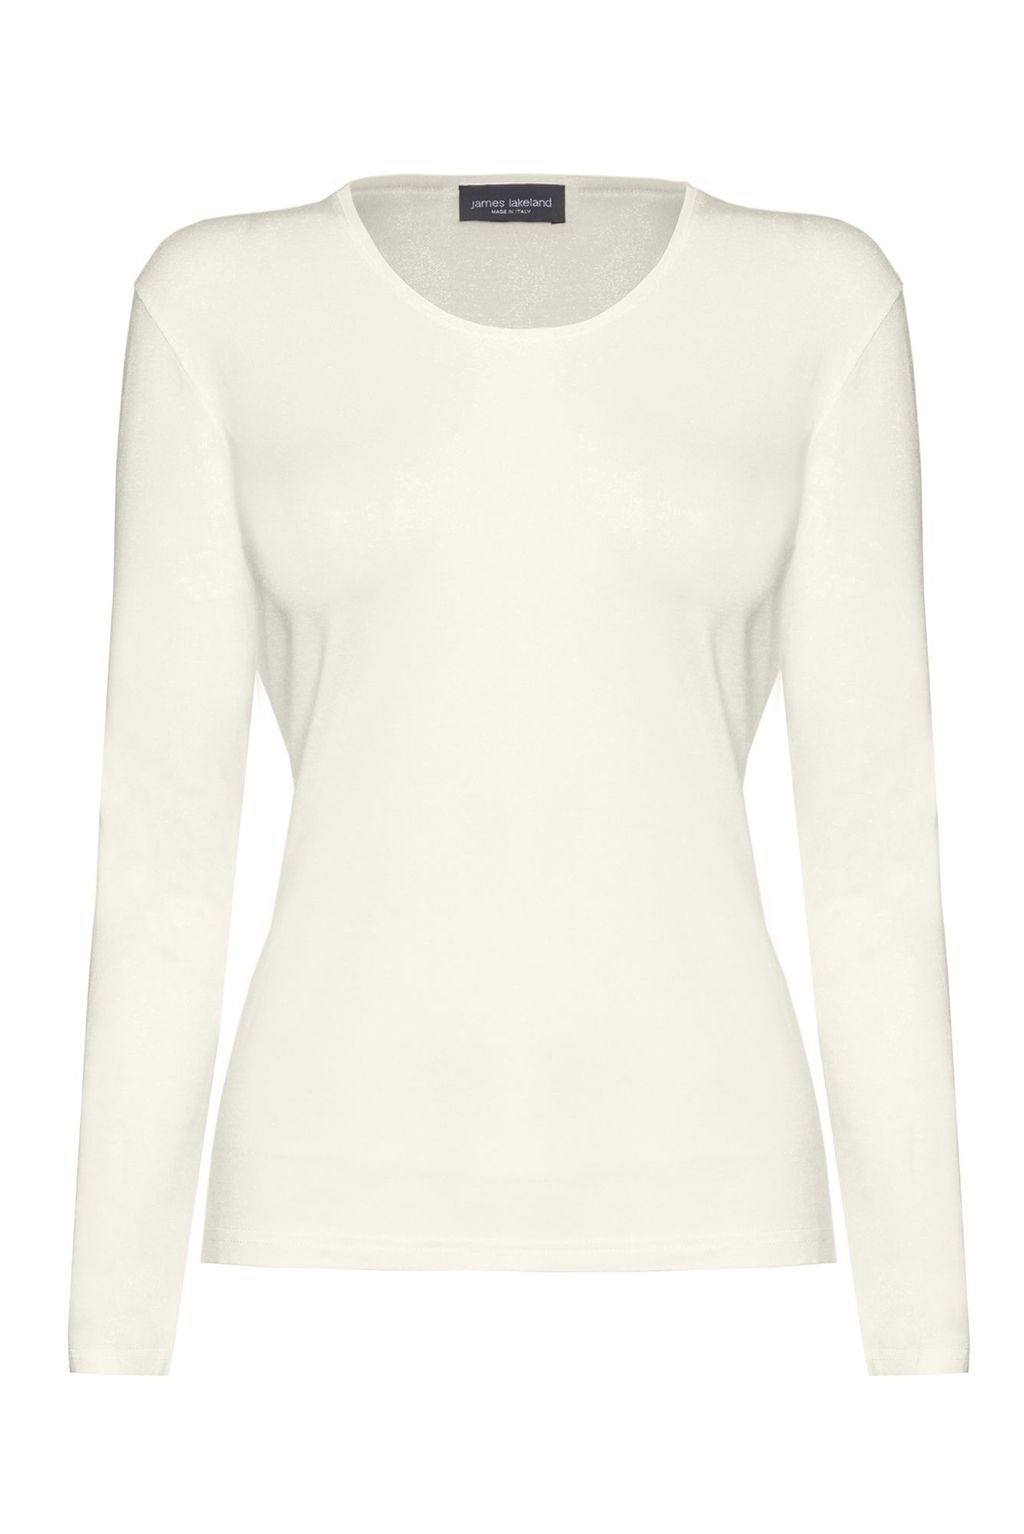 Basic Long Sleeve T Shirt, Cream - neckline: round neck; pattern: plain; style: t-shirt; predominant colour: ivory/cream; occasions: casual, work, creative work; length: standard; fibres: viscose/rayon - stretch; fit: body skimming; sleeve length: long sleeve; sleeve style: standard; texture group: jersey - clingy; pattern type: fabric; season: a/w 2015; wardrobe: basic